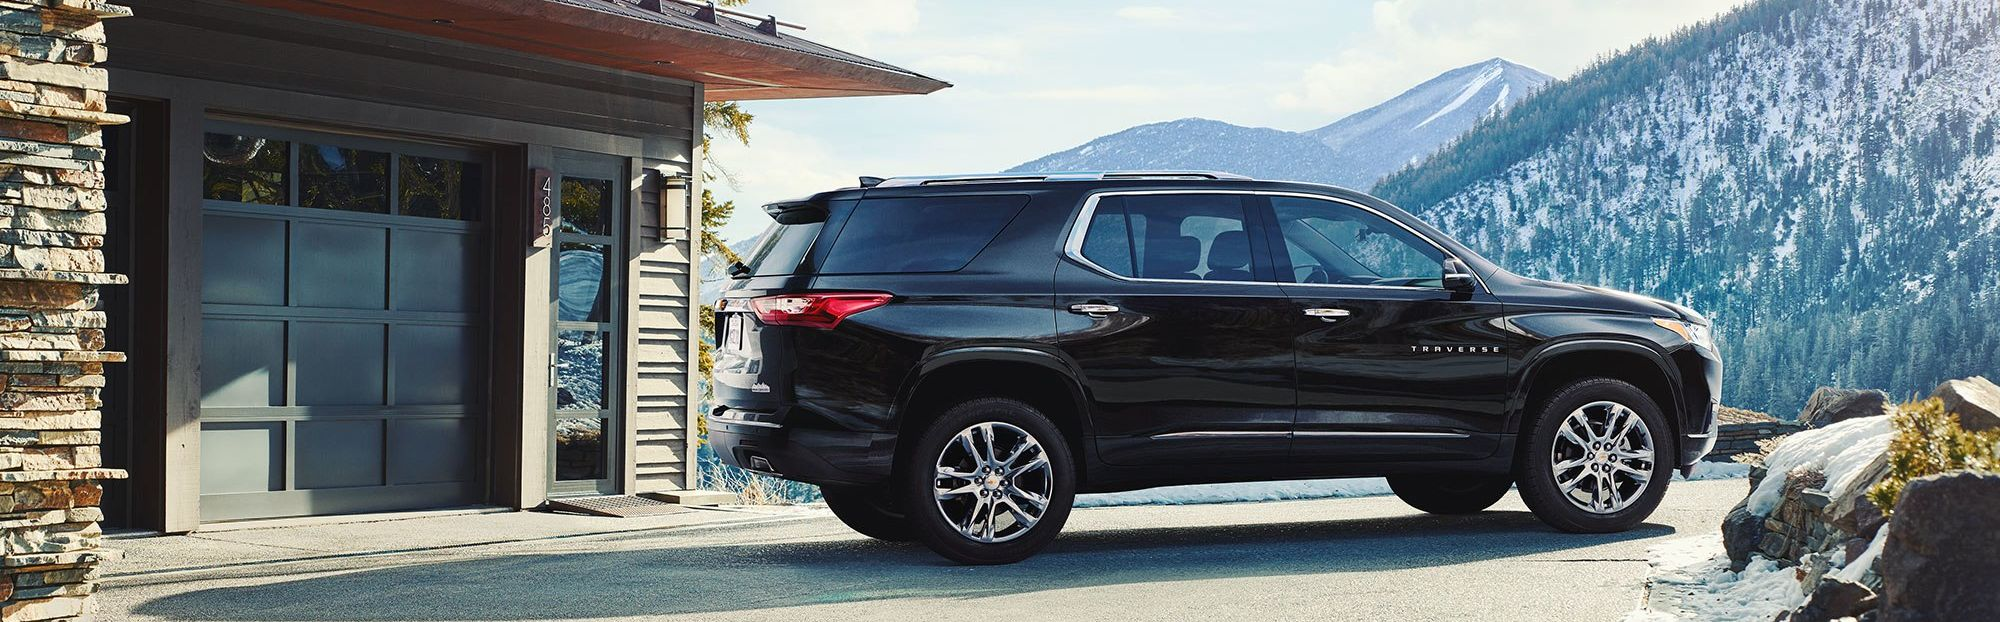 2019 Chevrolet Traverse for Sale near Lansing, MI